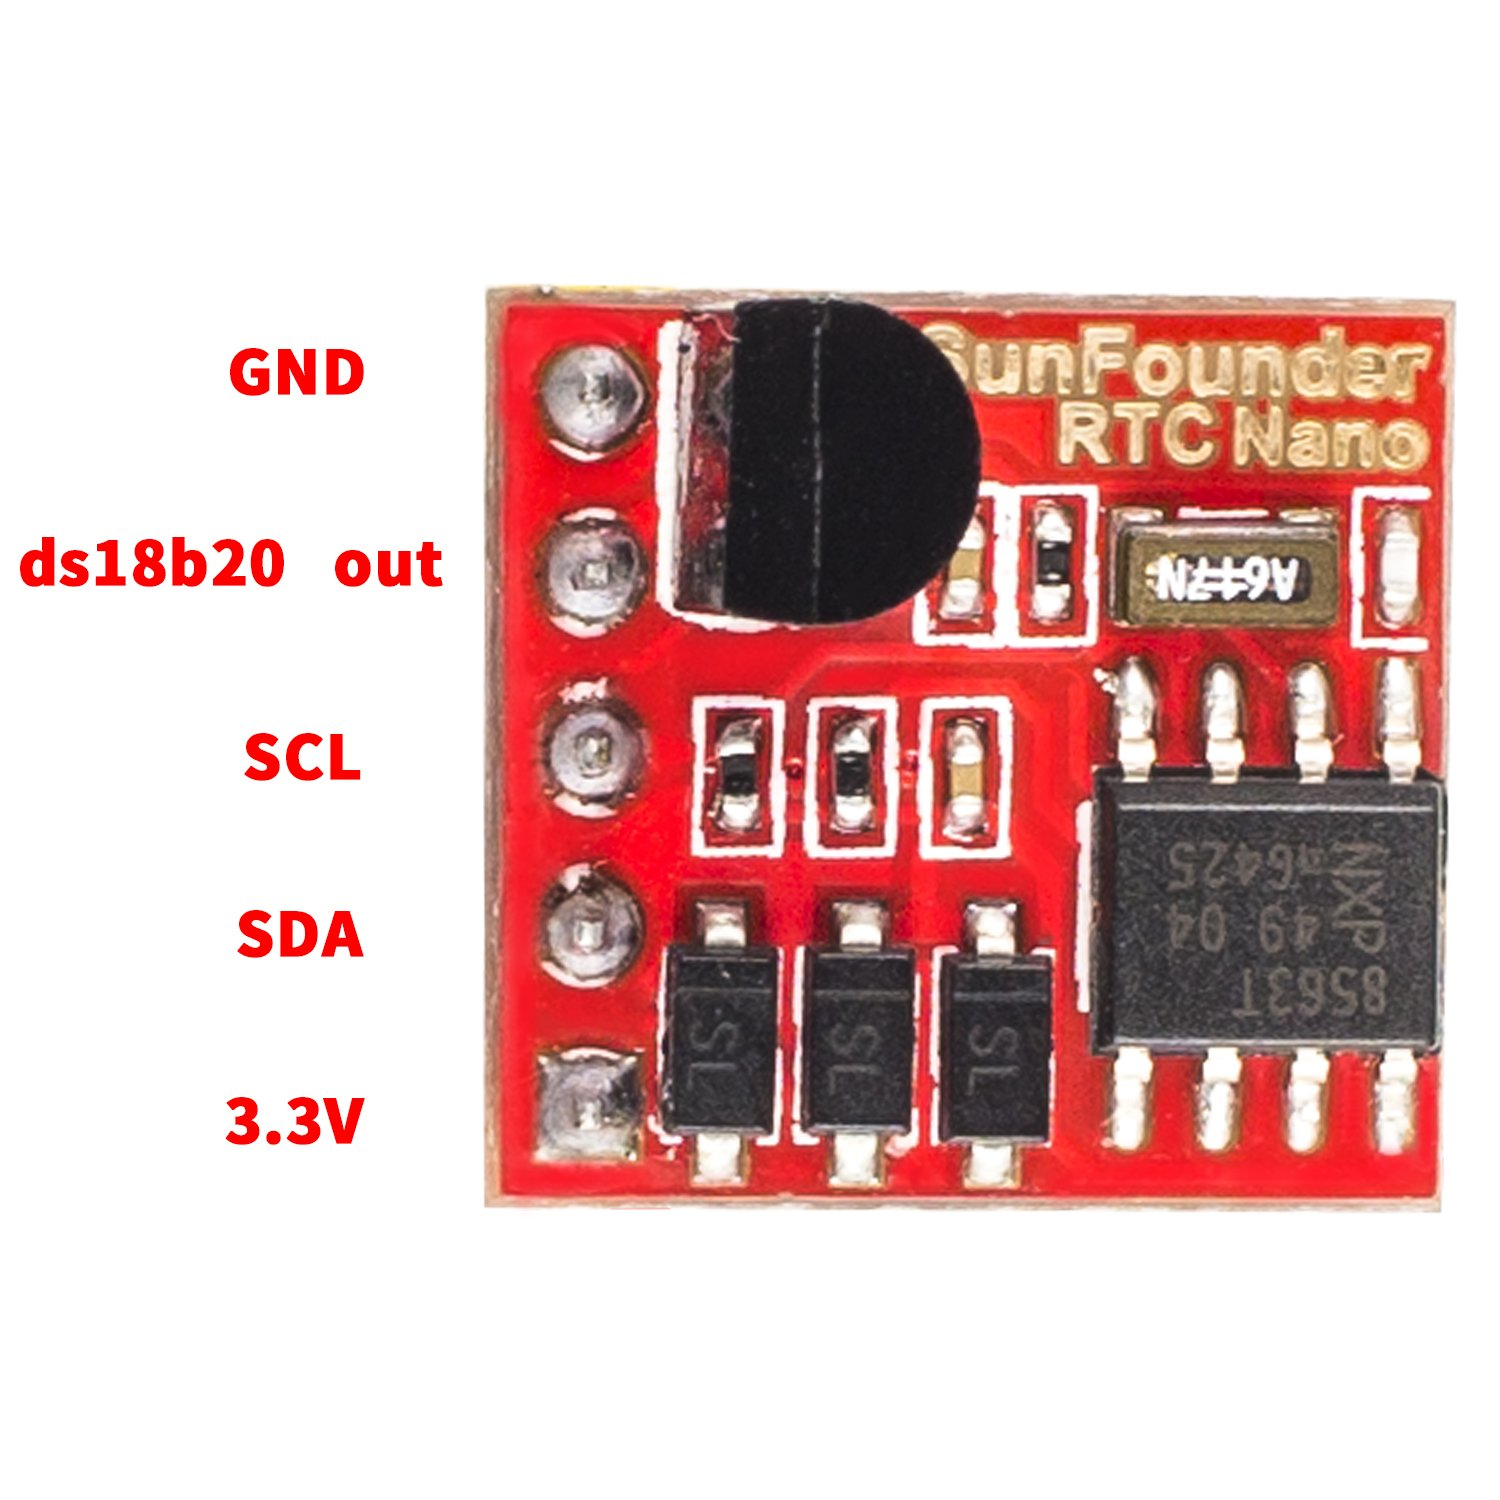 Sunfounder Pcf8563 Iic I2c Real Time Clock Rtc And Example Of A Recommended Application Circuit For Backup Ds18b20 Temperature Sensor Module Arduino Raspberry Pi Computers Accessories